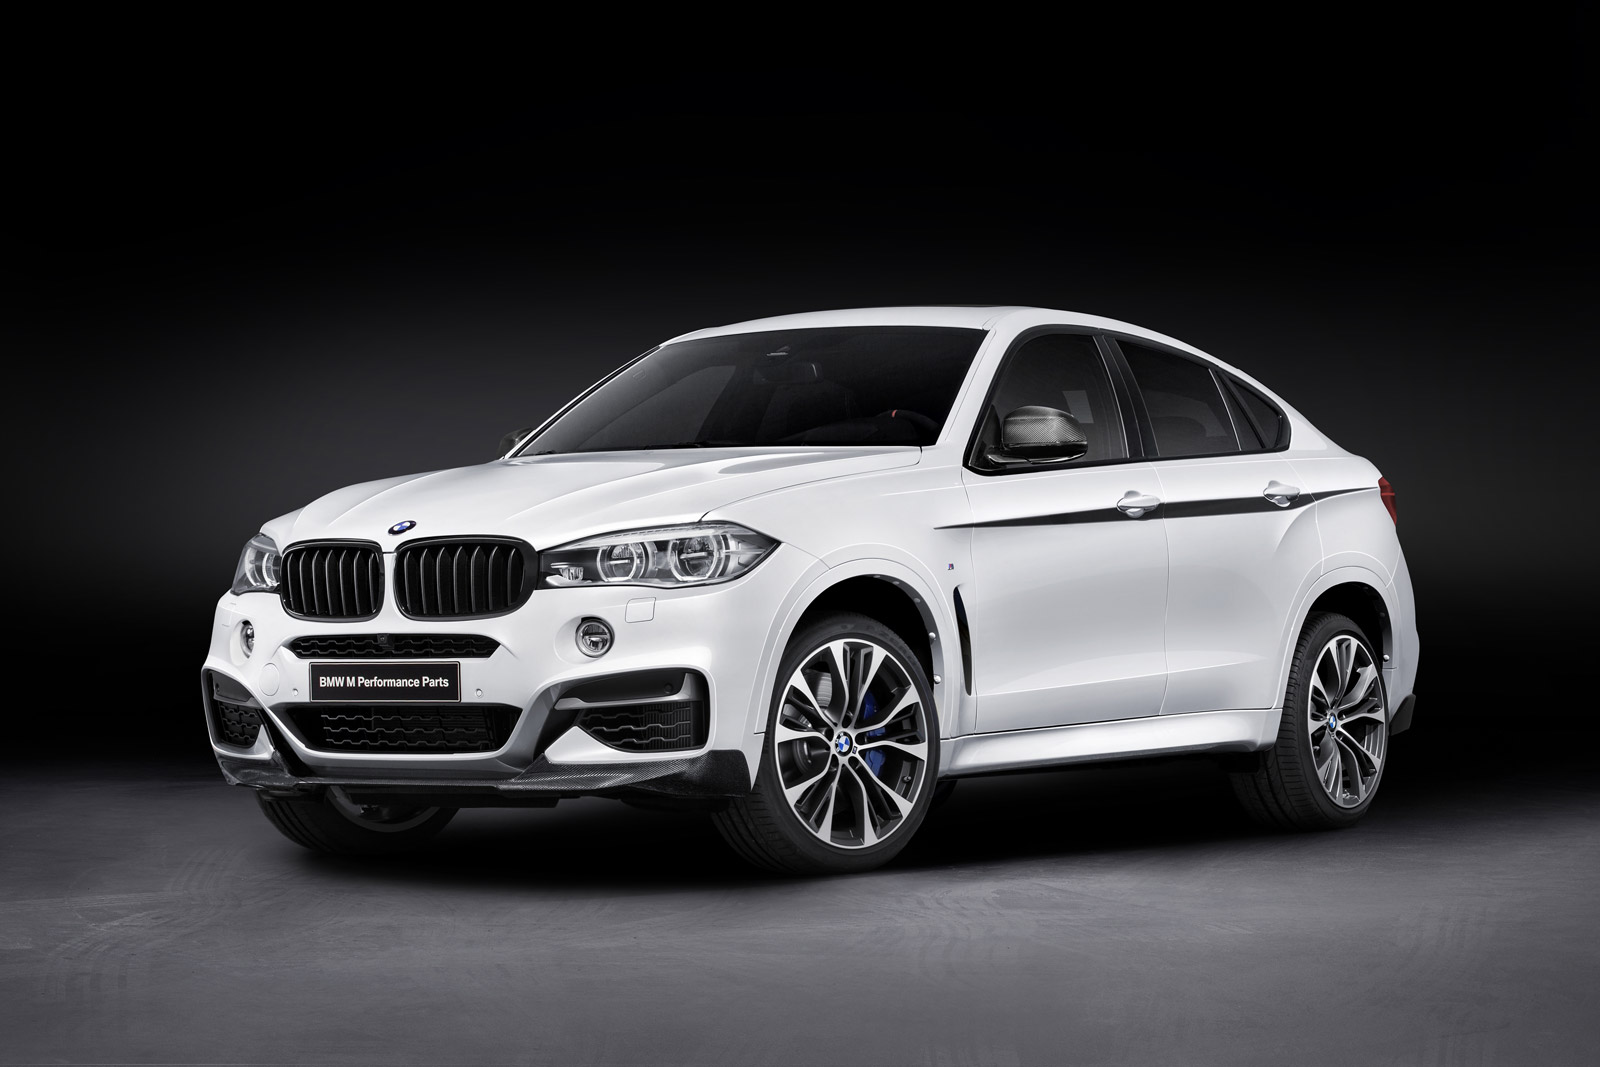 2015 bmw x6 with bmw m performance upgrades 100493671. Black Bedroom Furniture Sets. Home Design Ideas